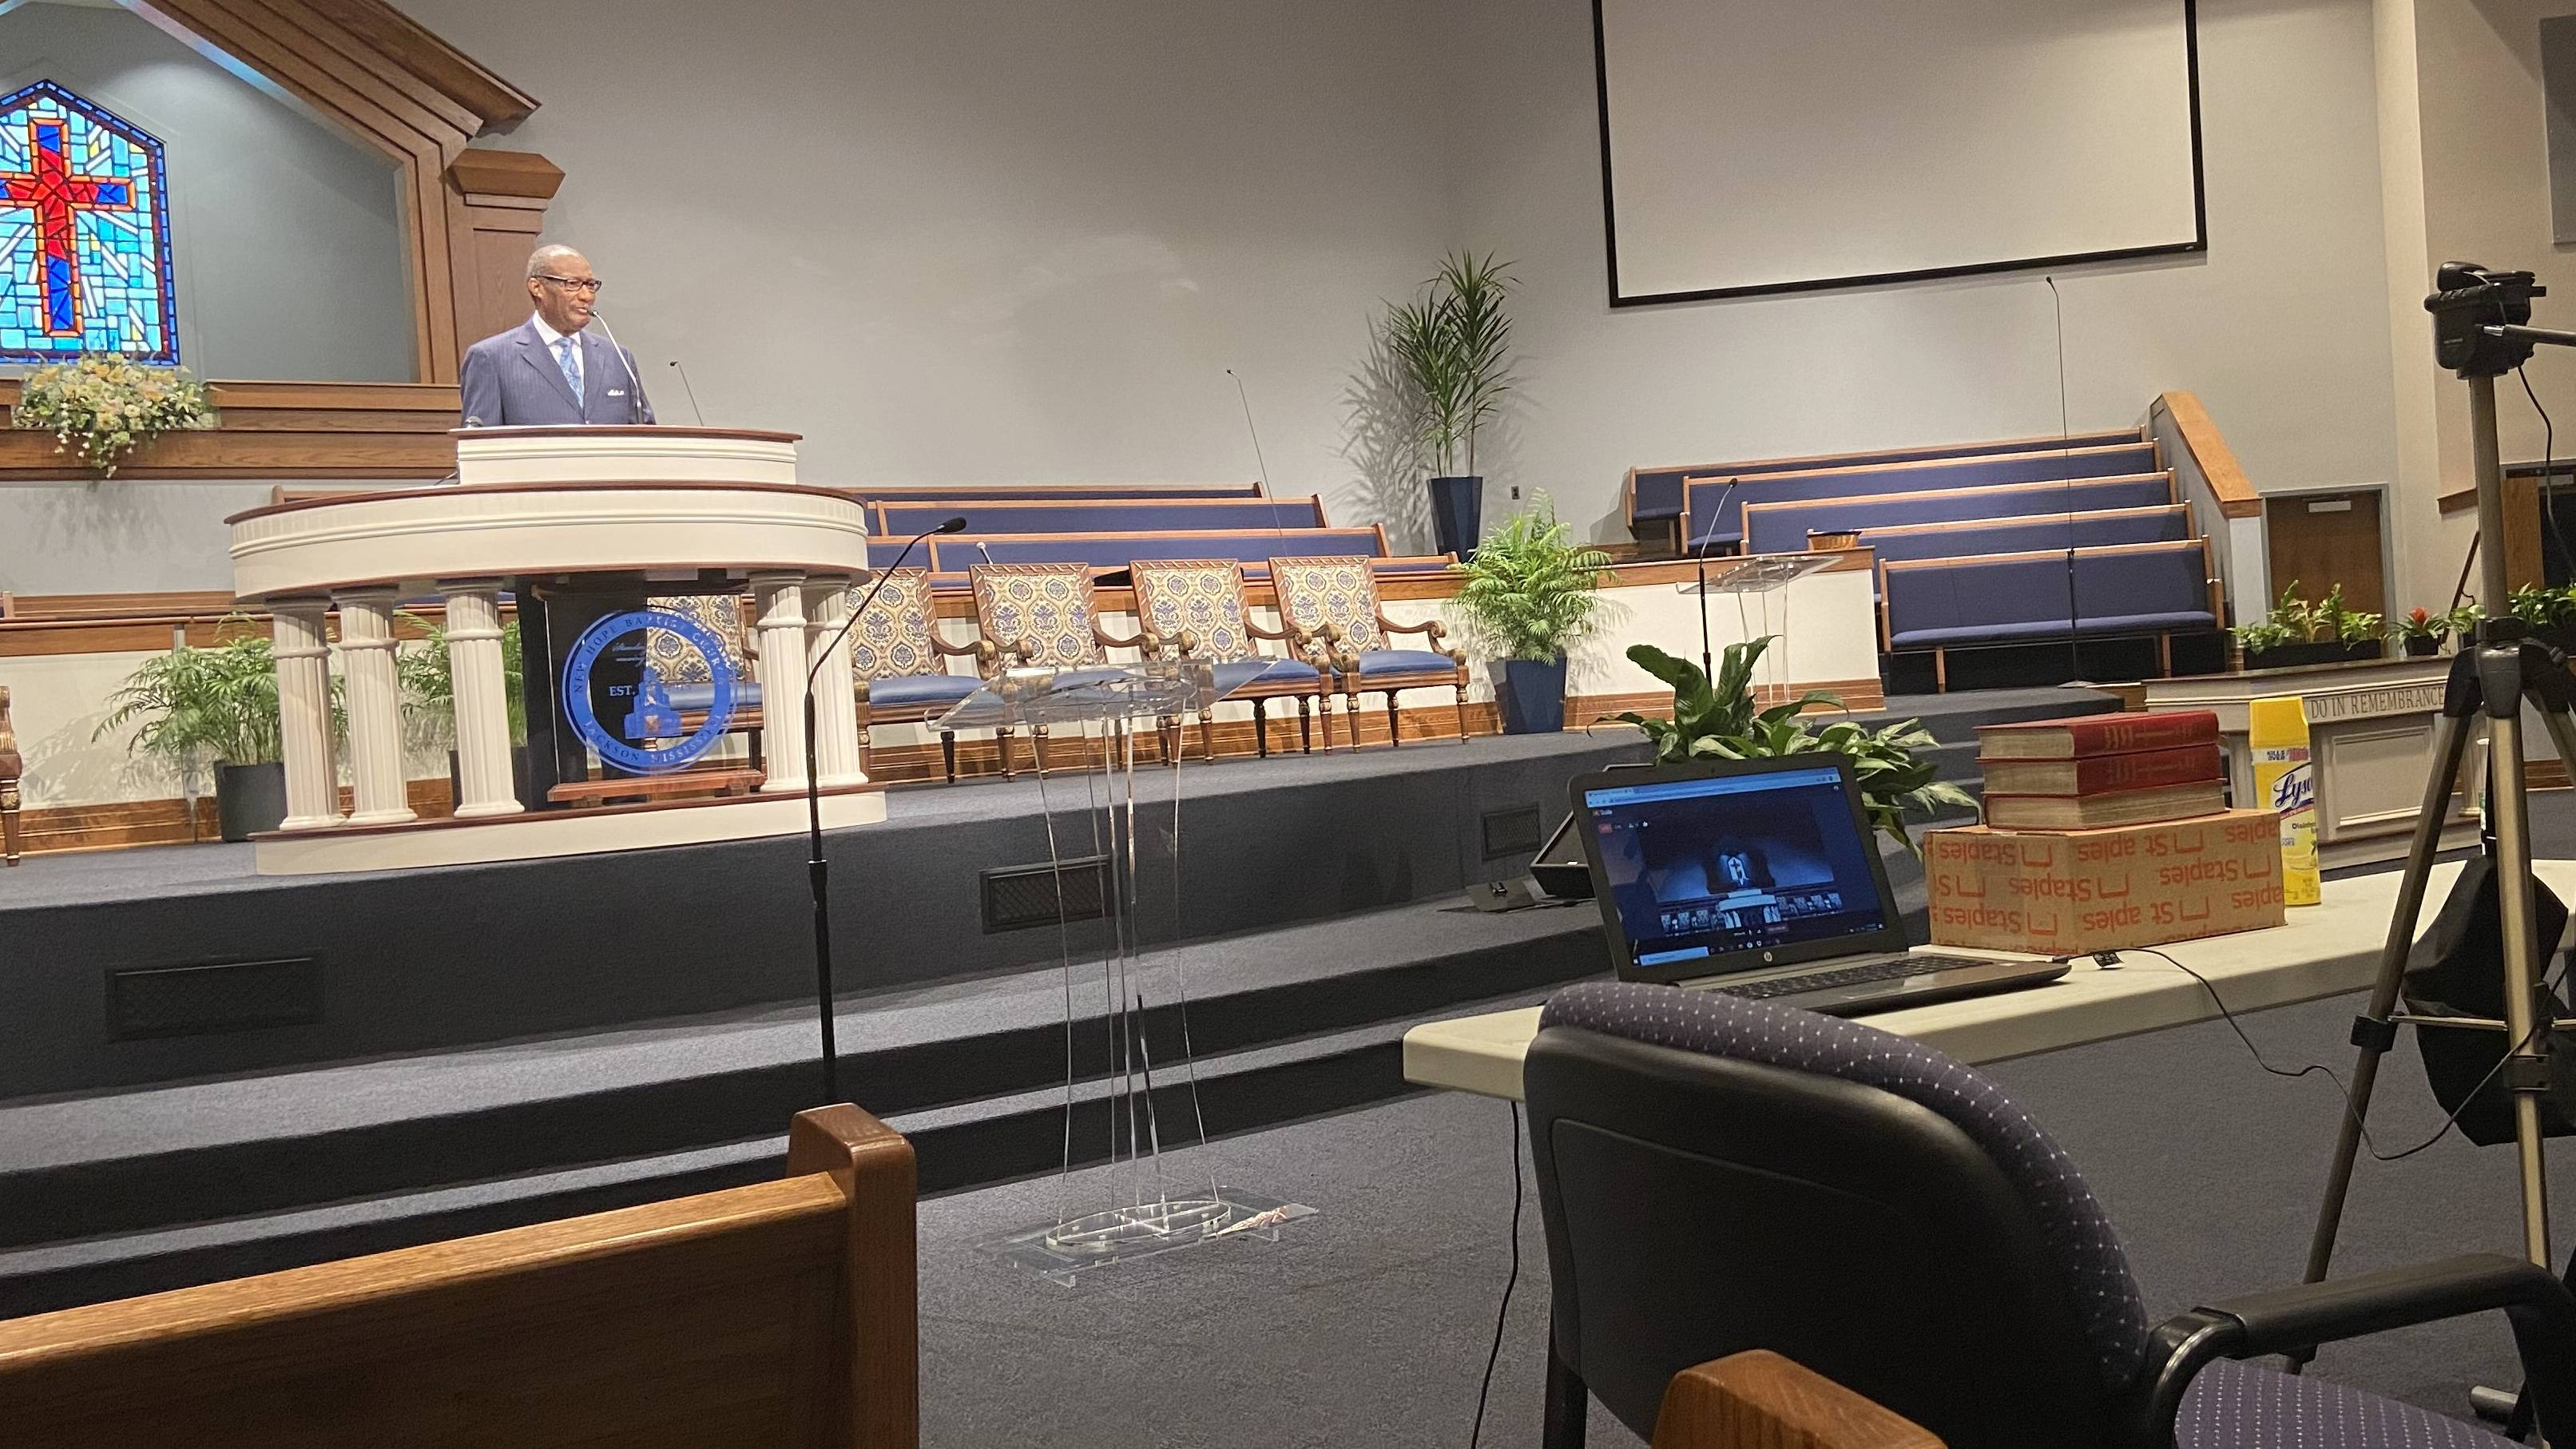 Churches in Miss. move Sunday Services online to combat COVID-19